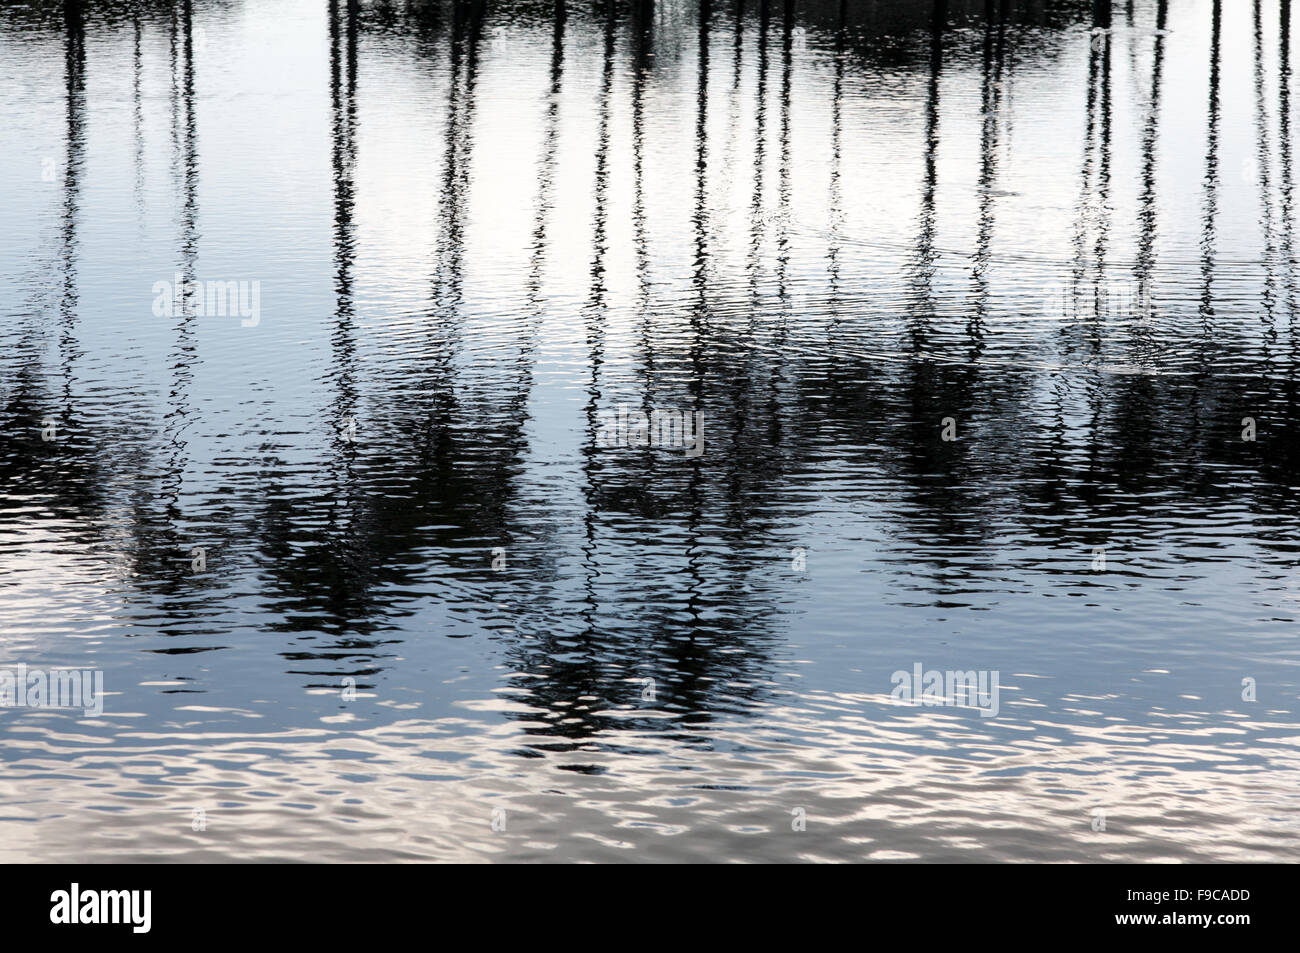 Palm trees reflection on water. - Stock Image